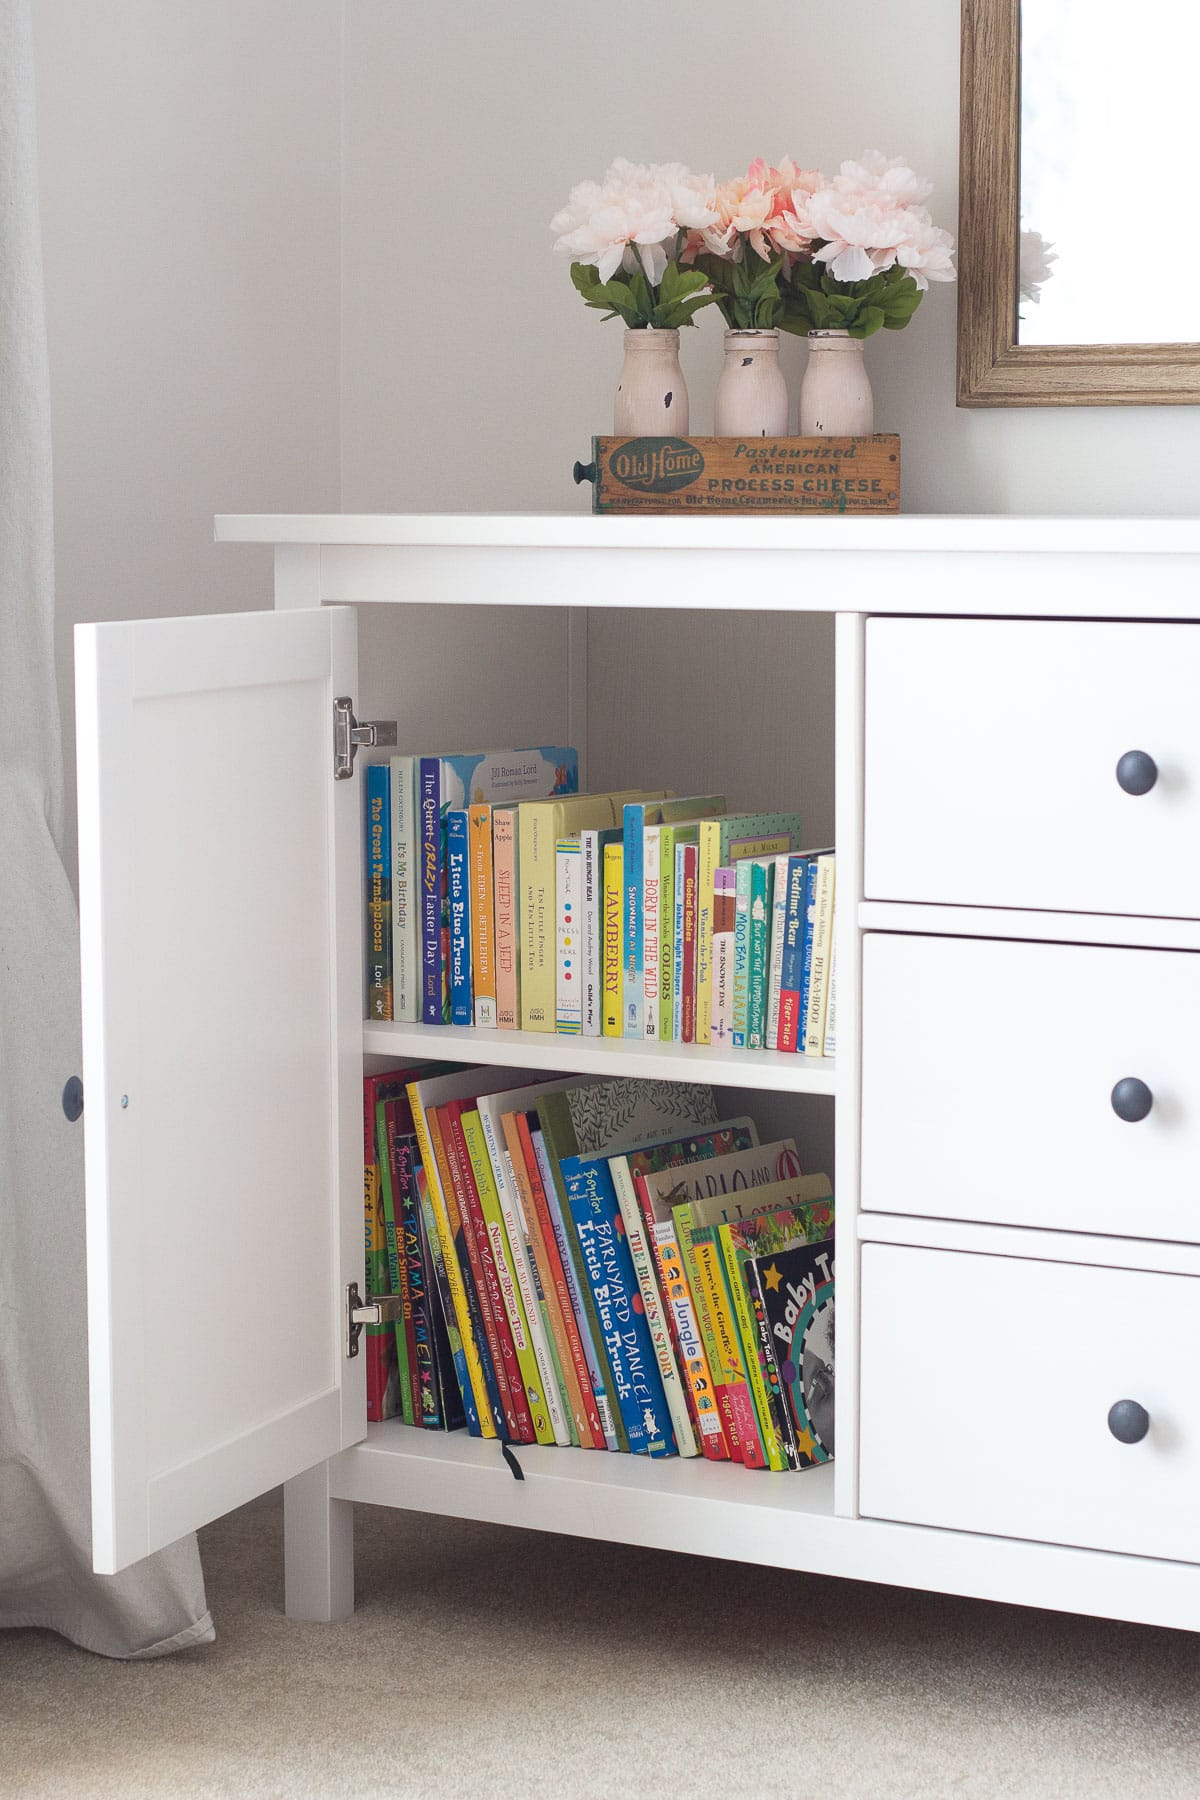 An open cupboard displaying children's picture books and board books.